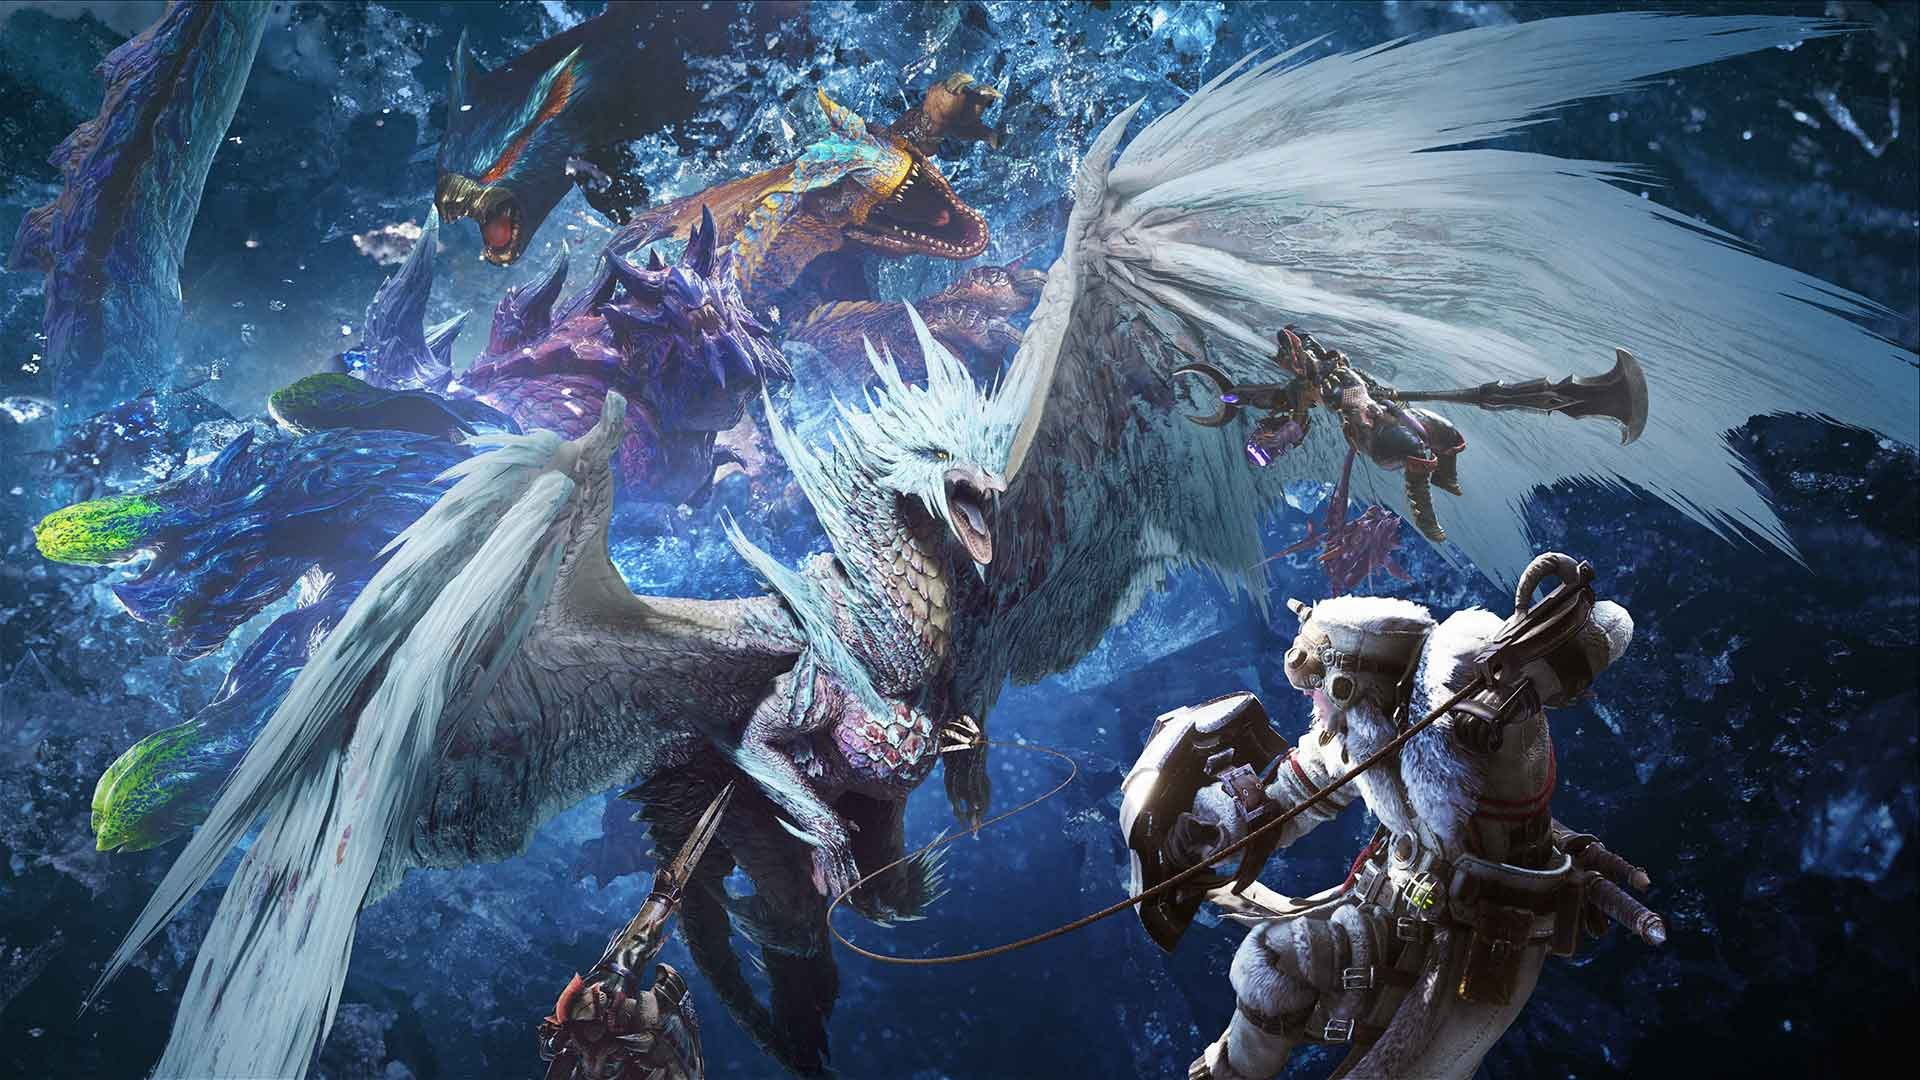 Iceborne ships 2.5 million units during launch week